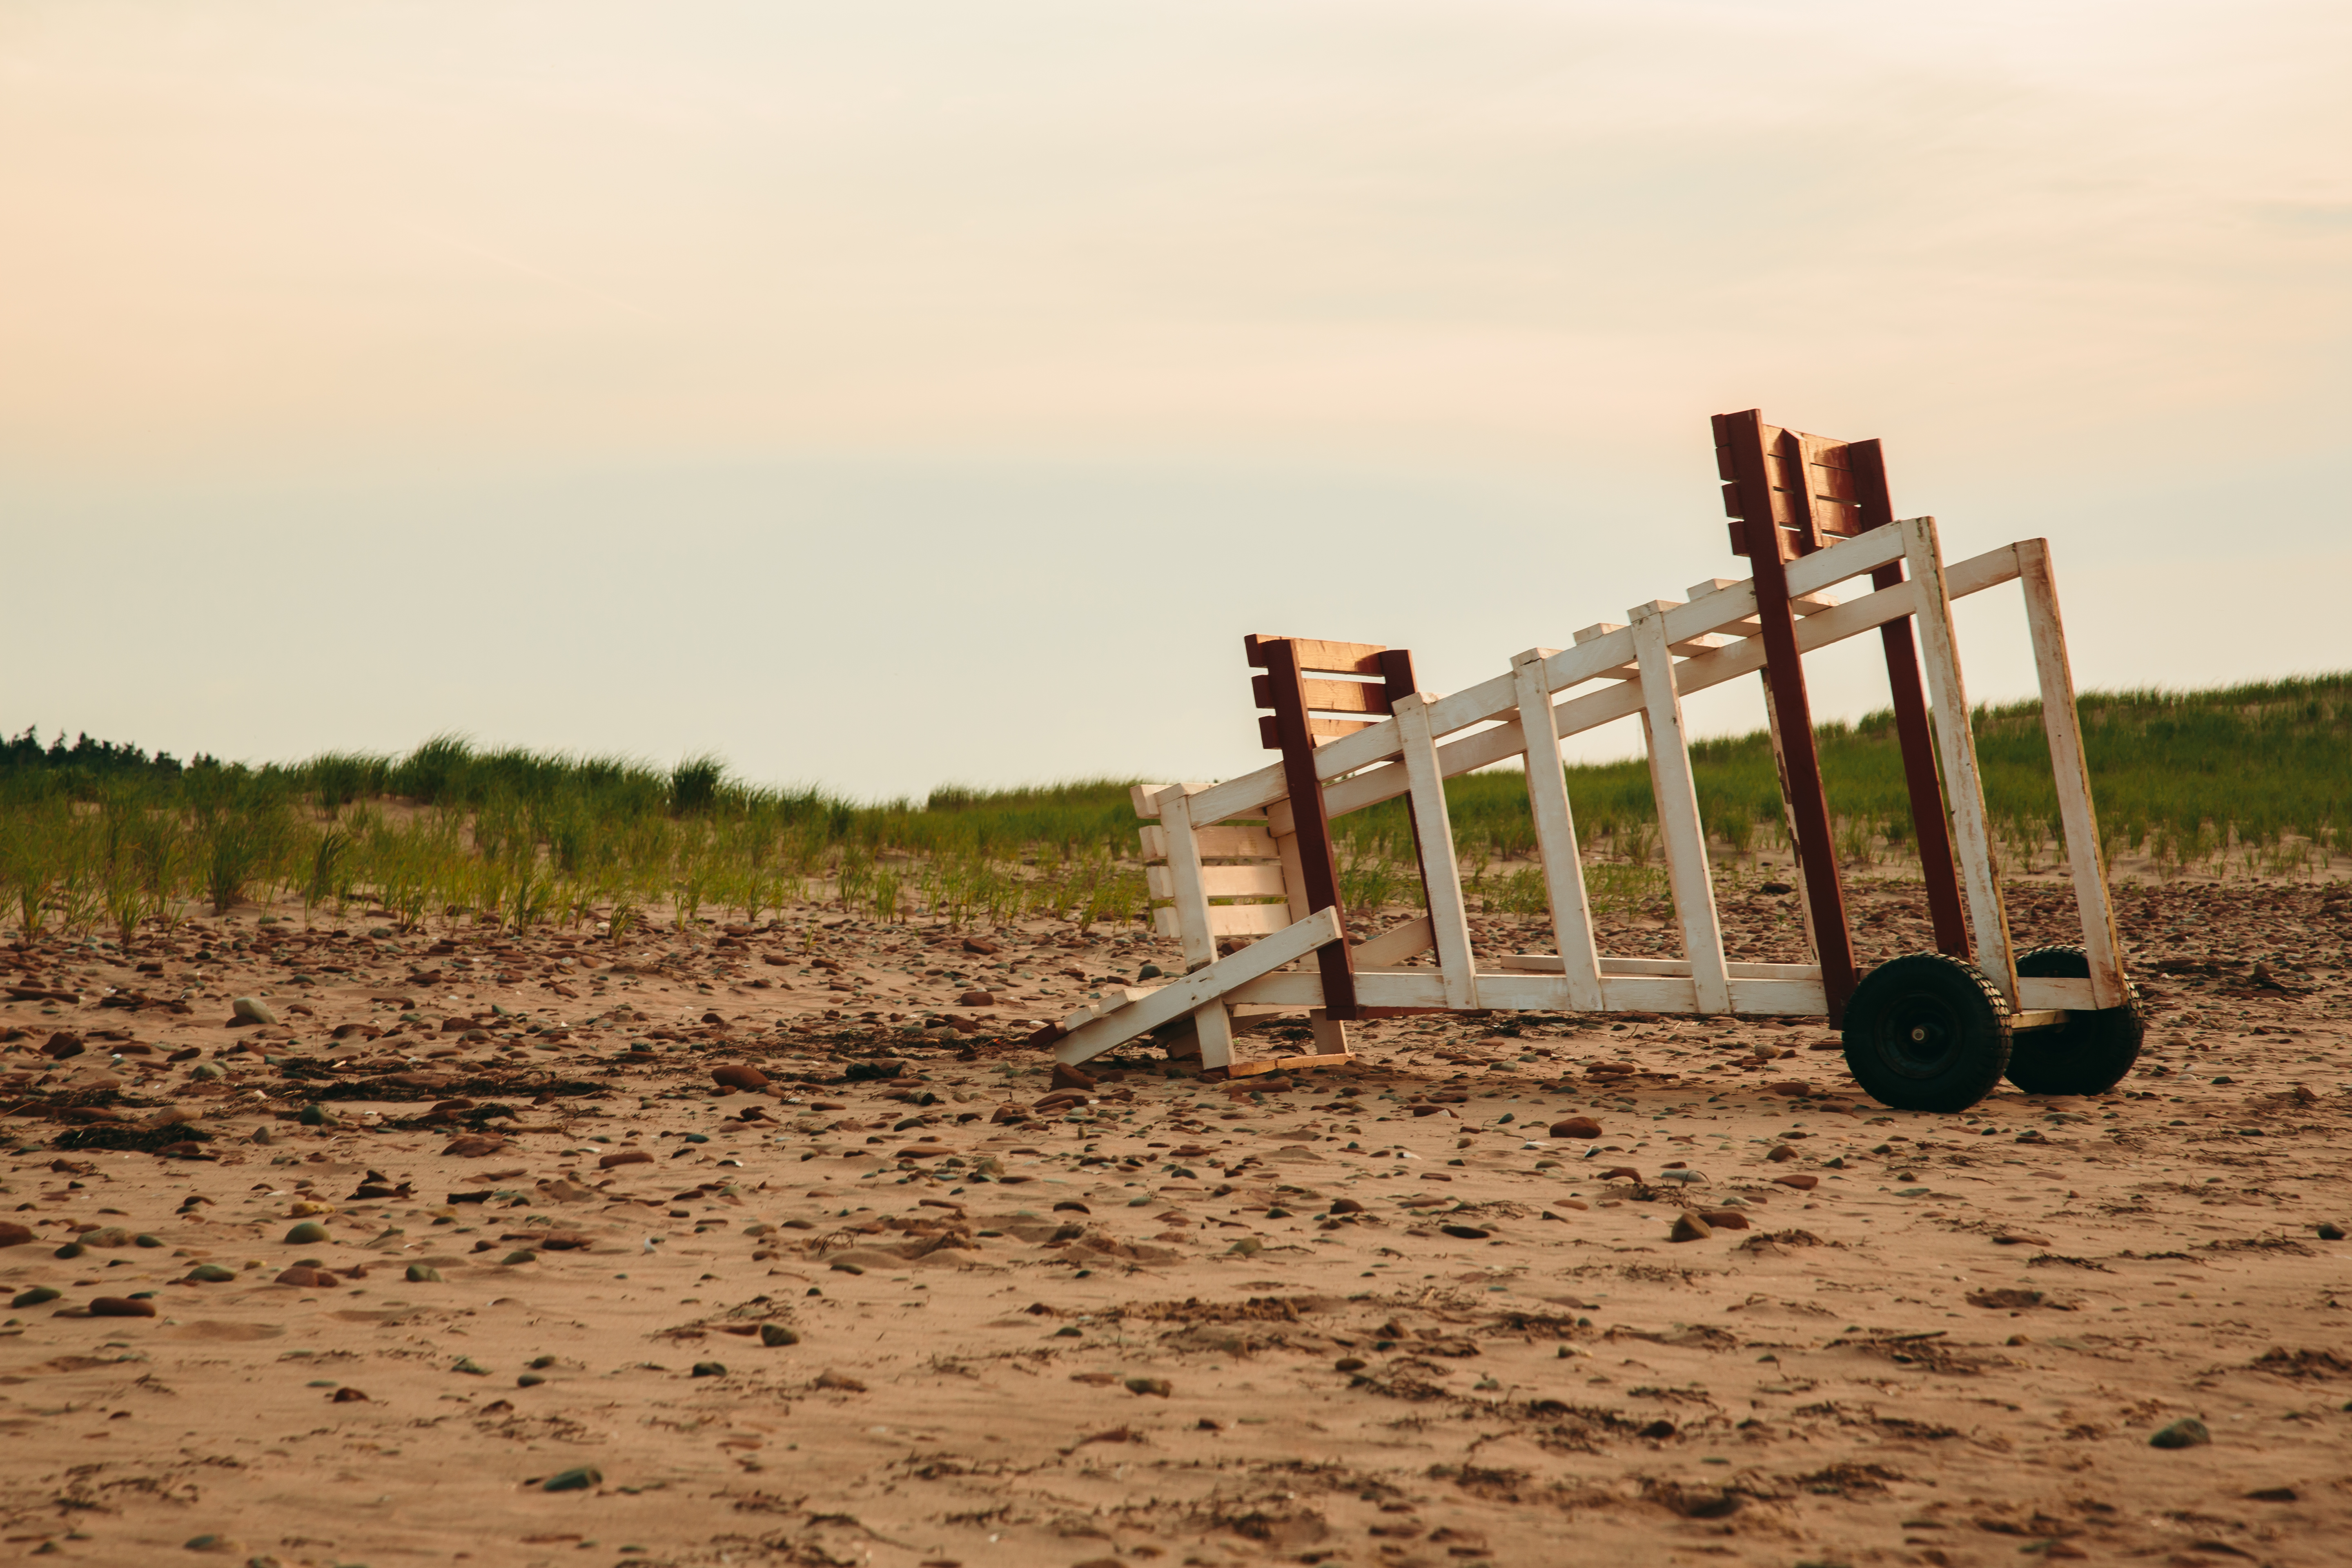 Prince Edward Island Stock Photo Lifeguard Chair Tipped on Cavendish Beach Stock Photo